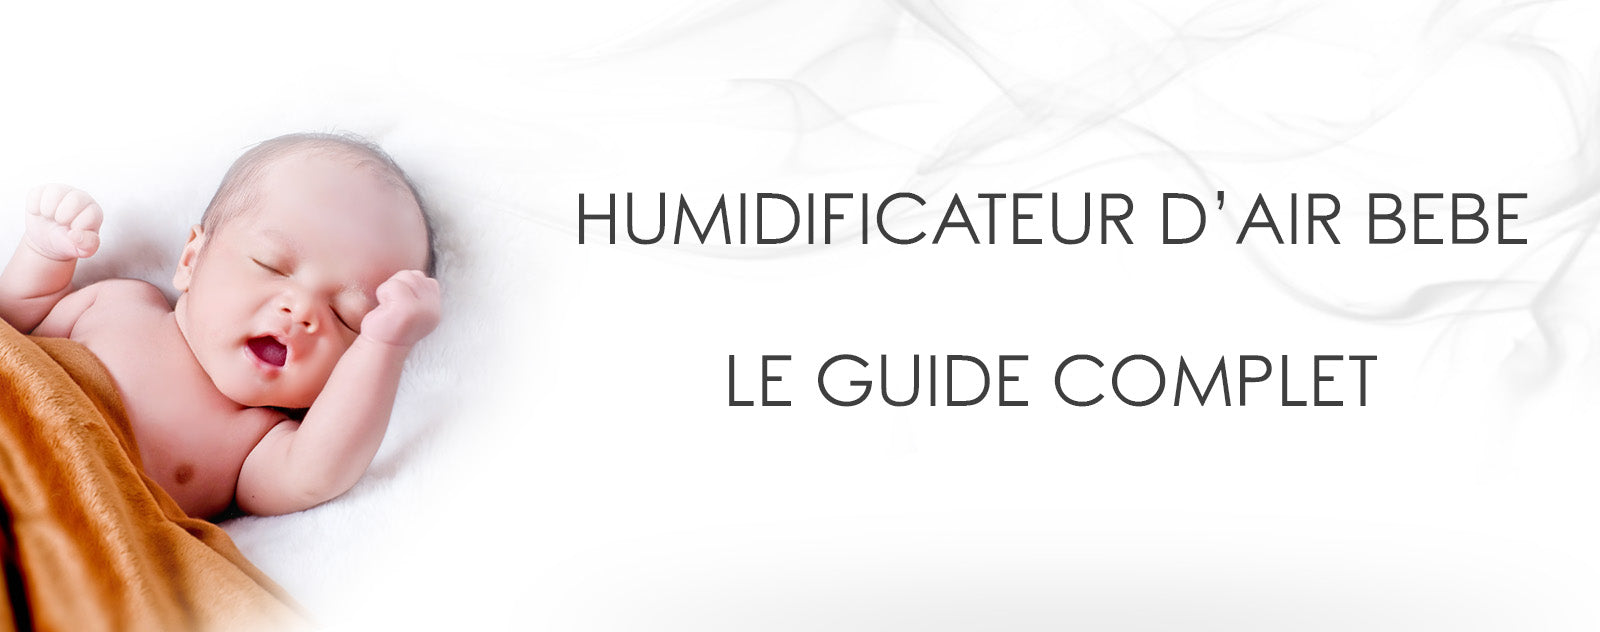 Humidificateur d'air Bébé : Guide Complet 2020